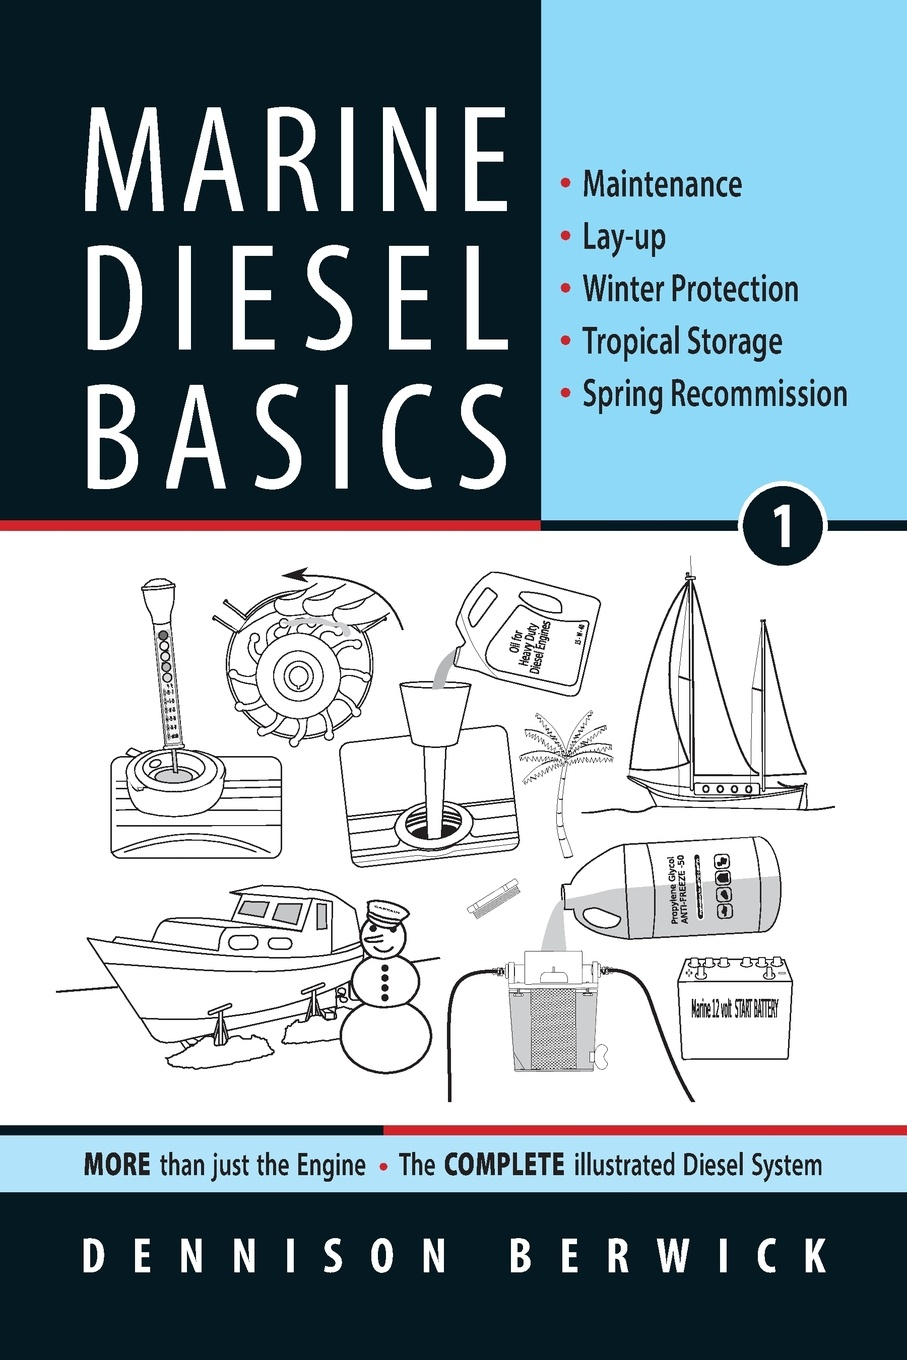 Dennison Berwick Marine Diesel Basics 1. Maintenance, Lay-up, Winter Protection, Tropical Storage, Spring Recommission